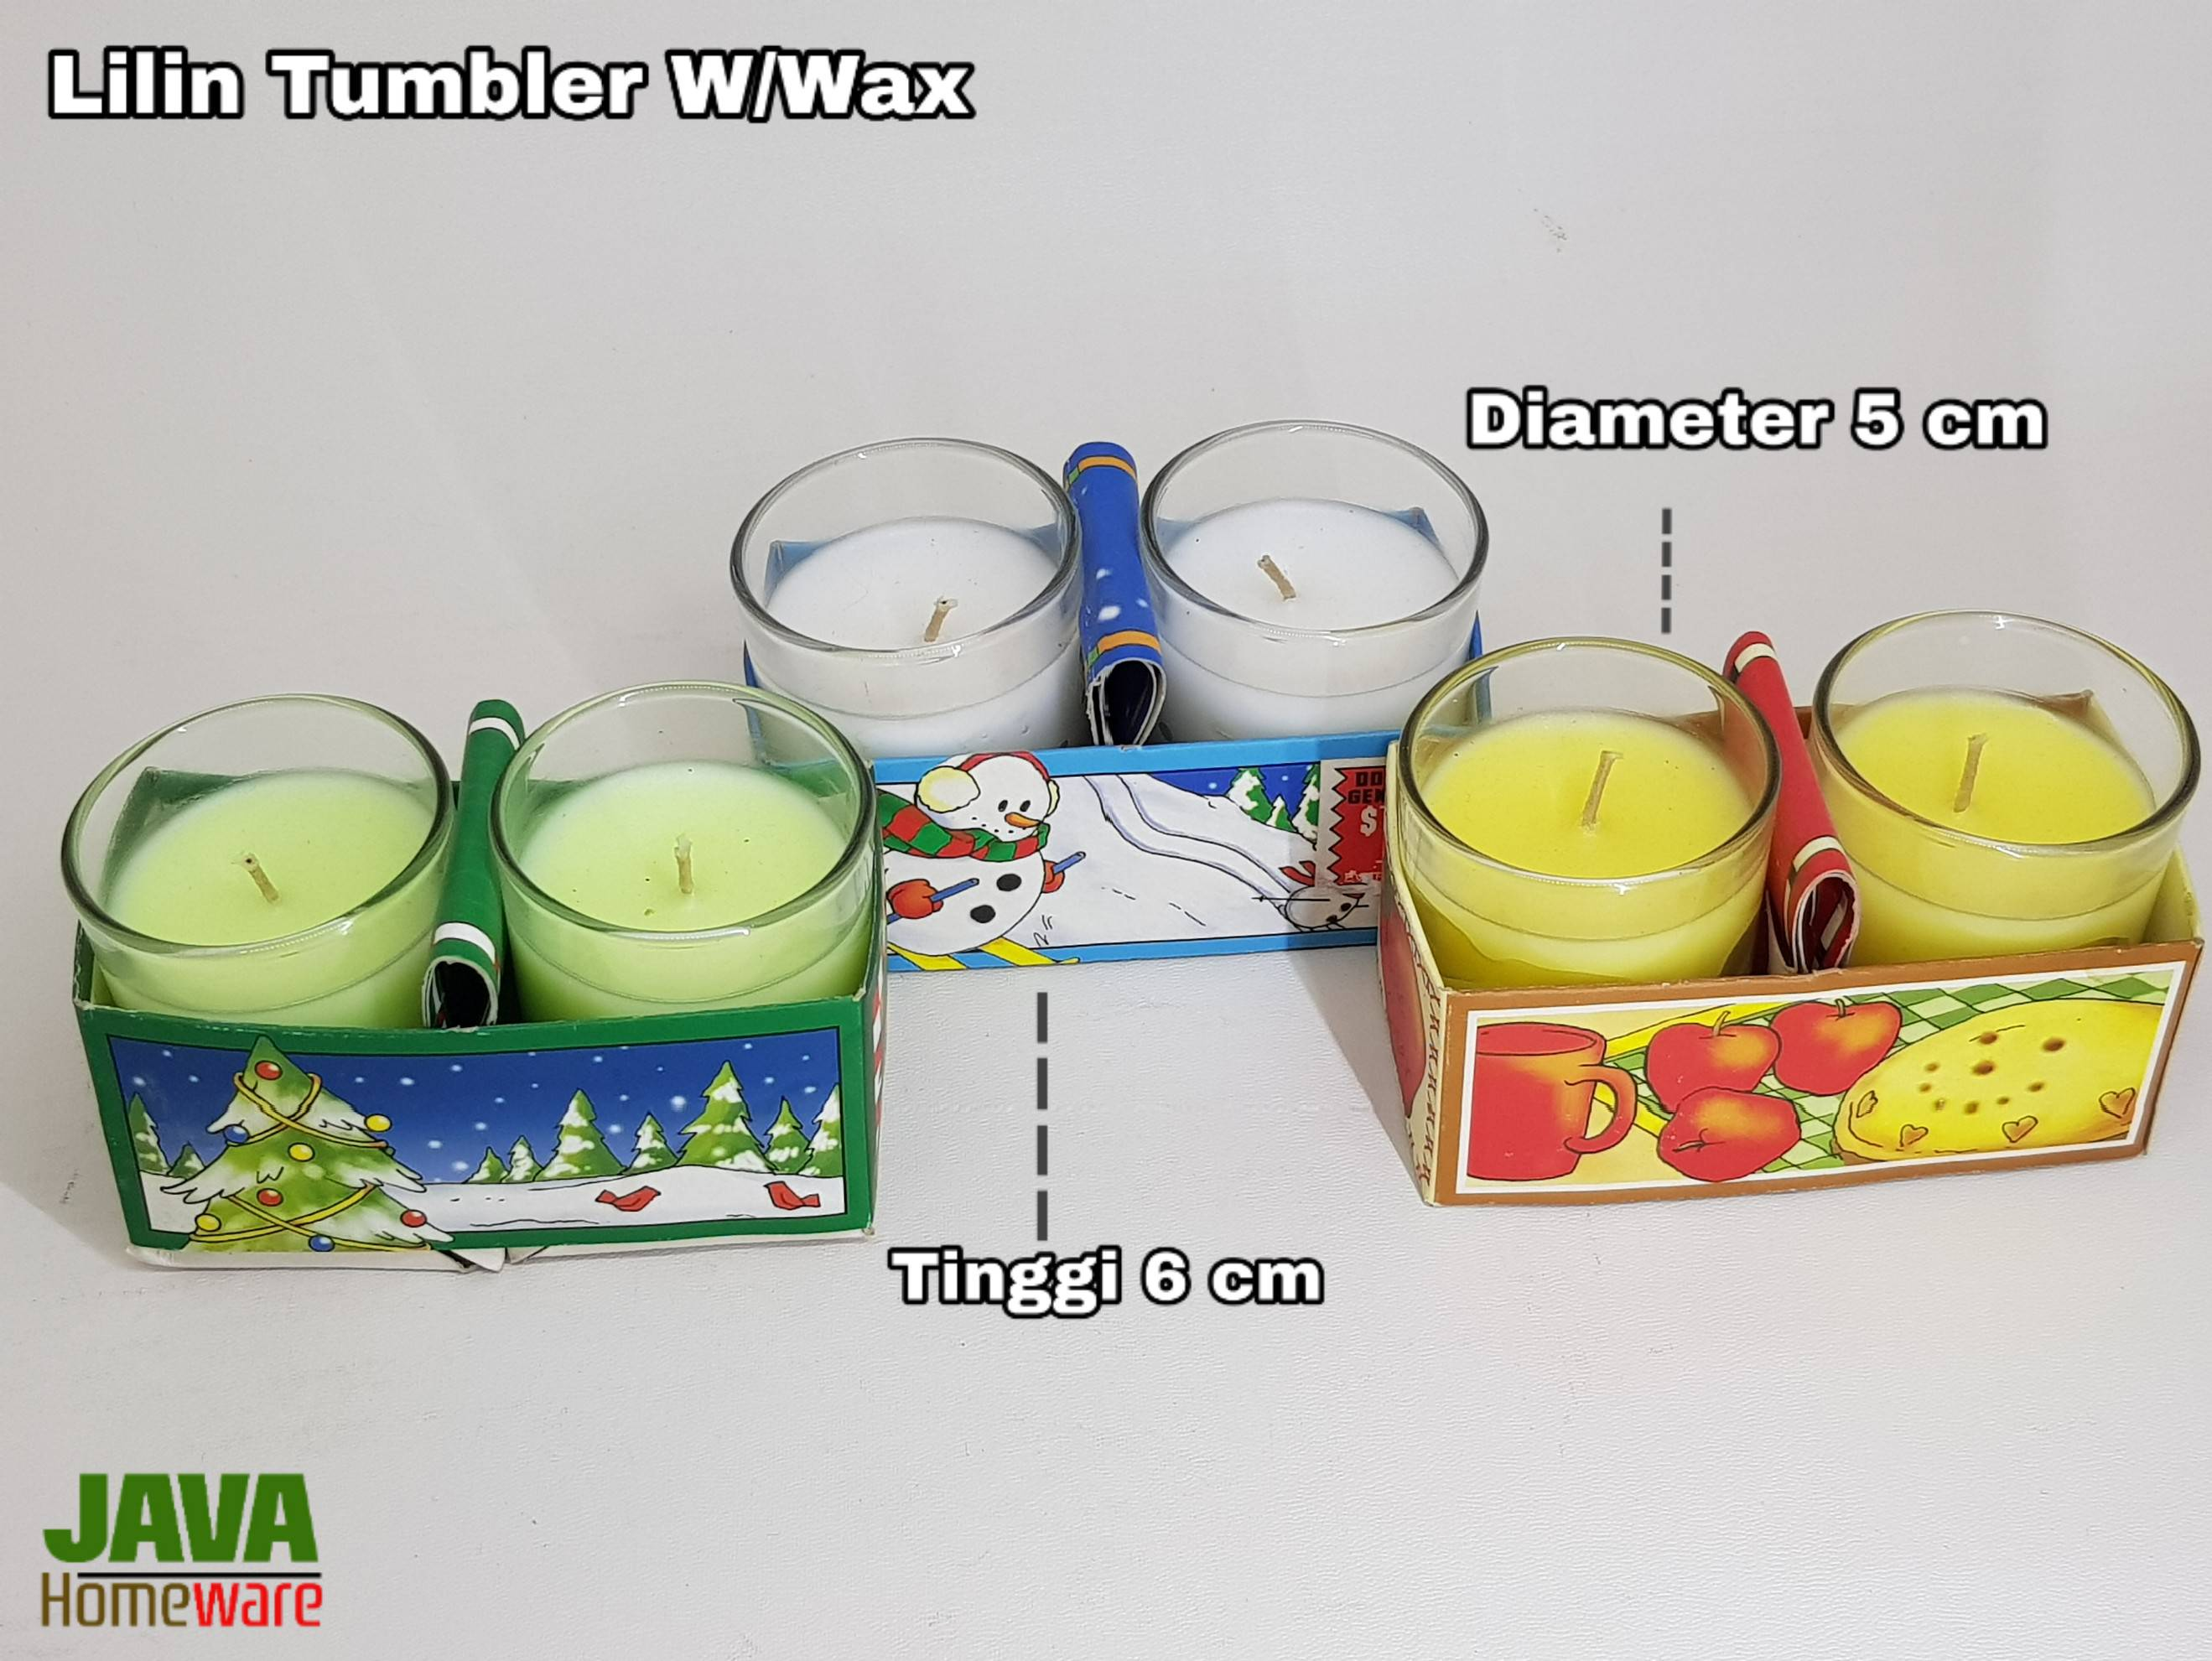 Lilin Tumbler Set W/Wax